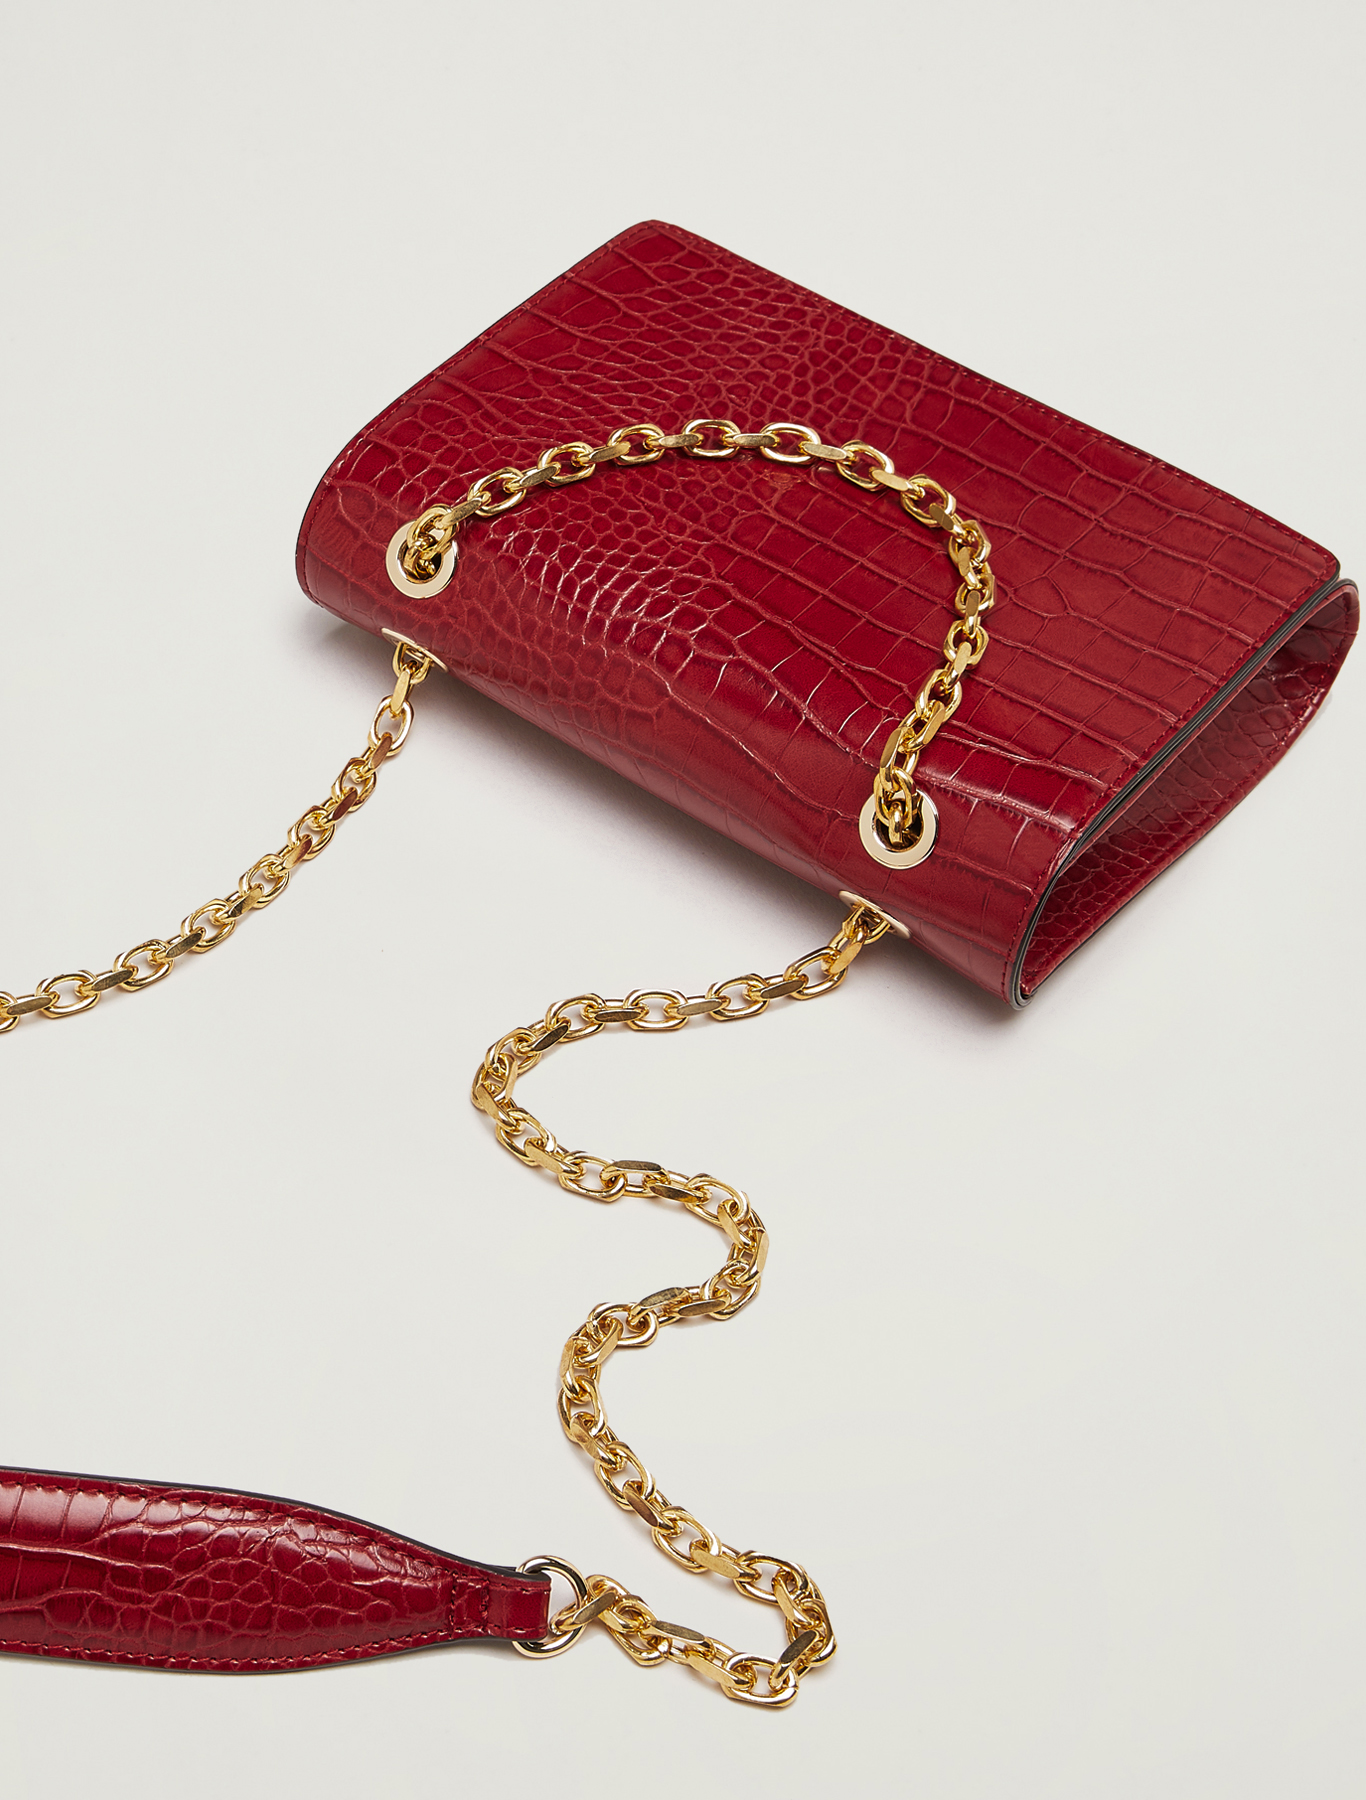 Croc-print chain bag - red - pennyblack